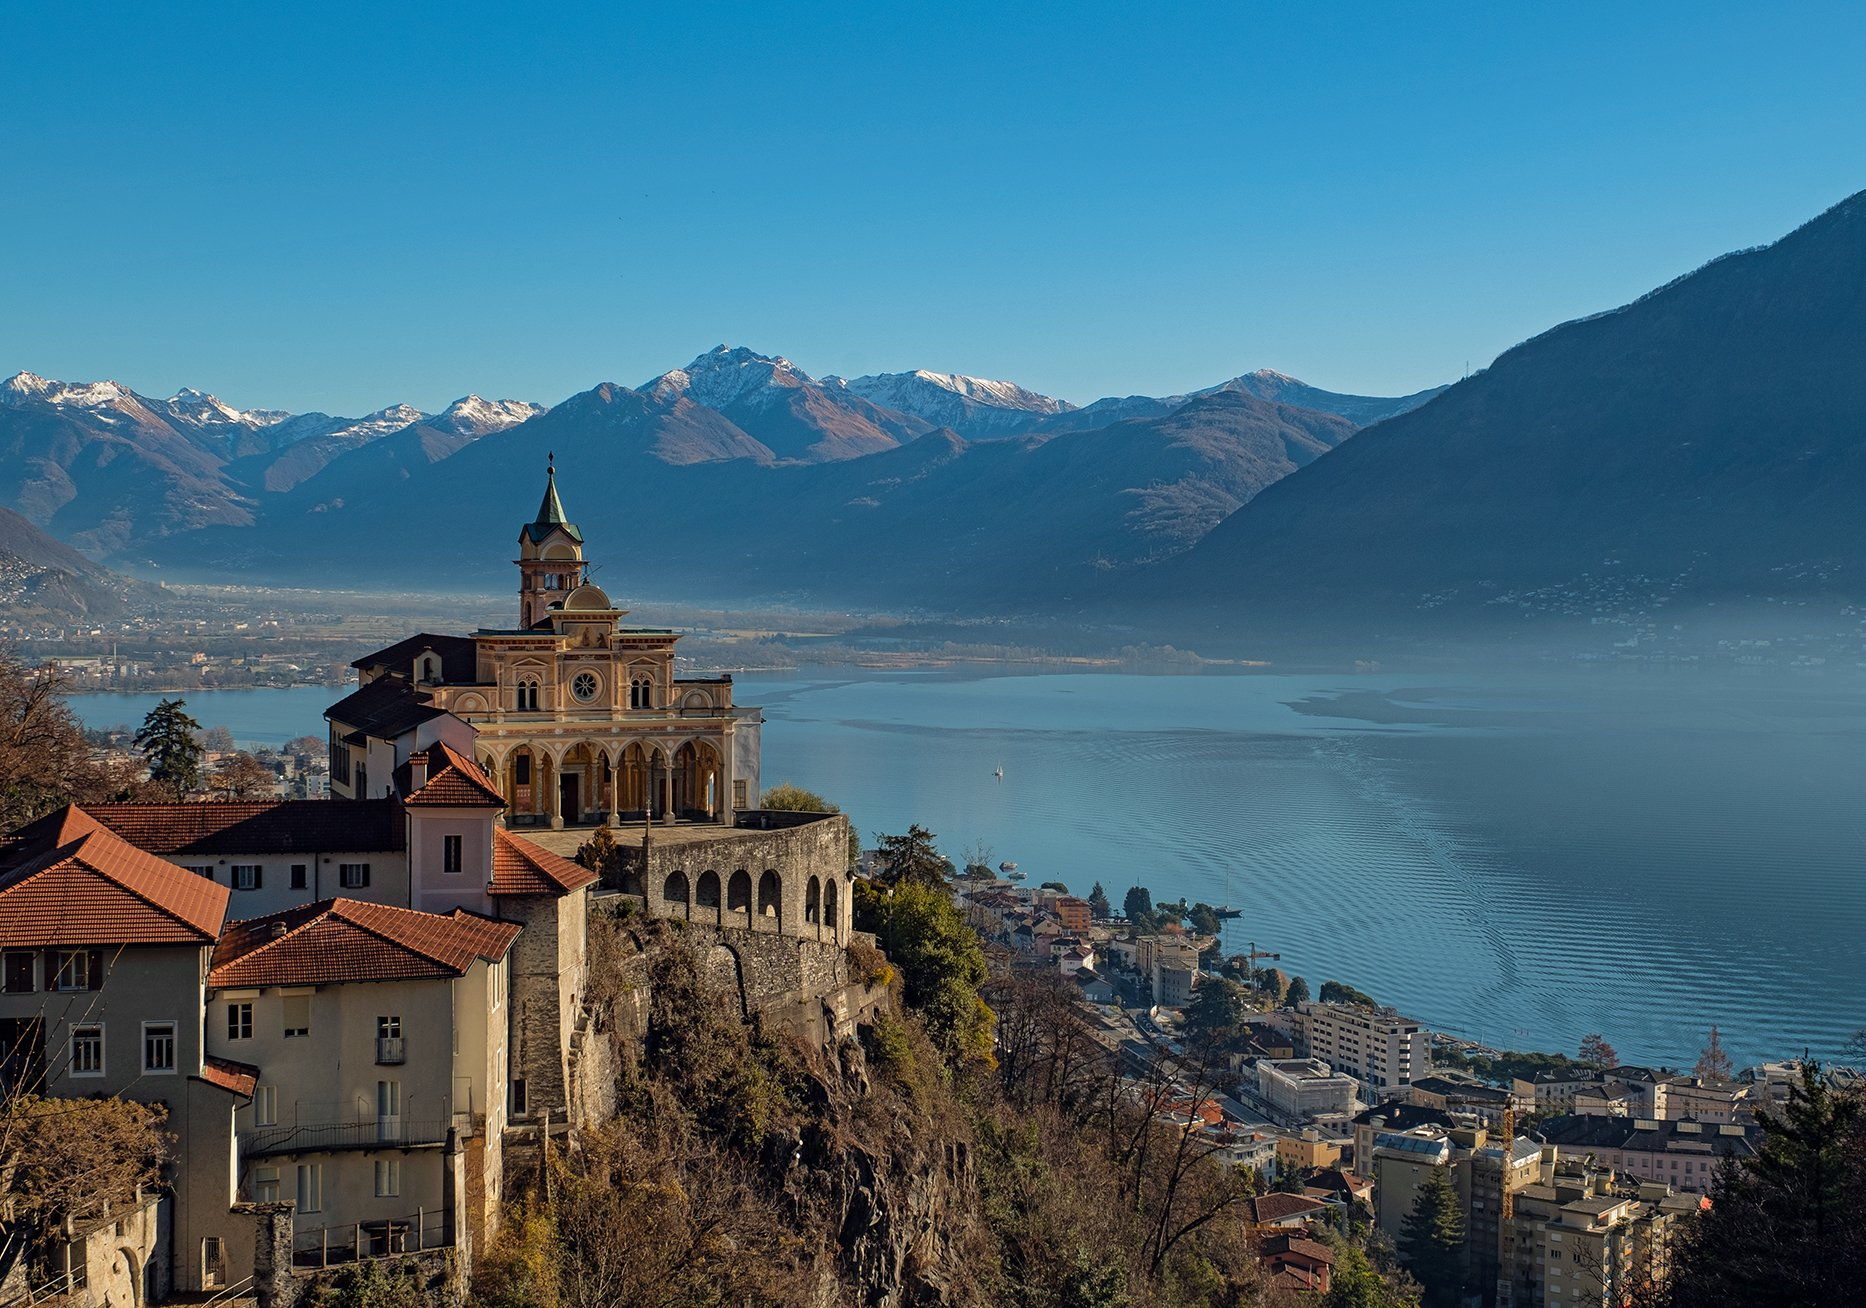 cathedral, church, lake, madonna, switzerland, lago maggiore, locarno, собор, церковь, локарно, швейцария, Владимир В. Эделев